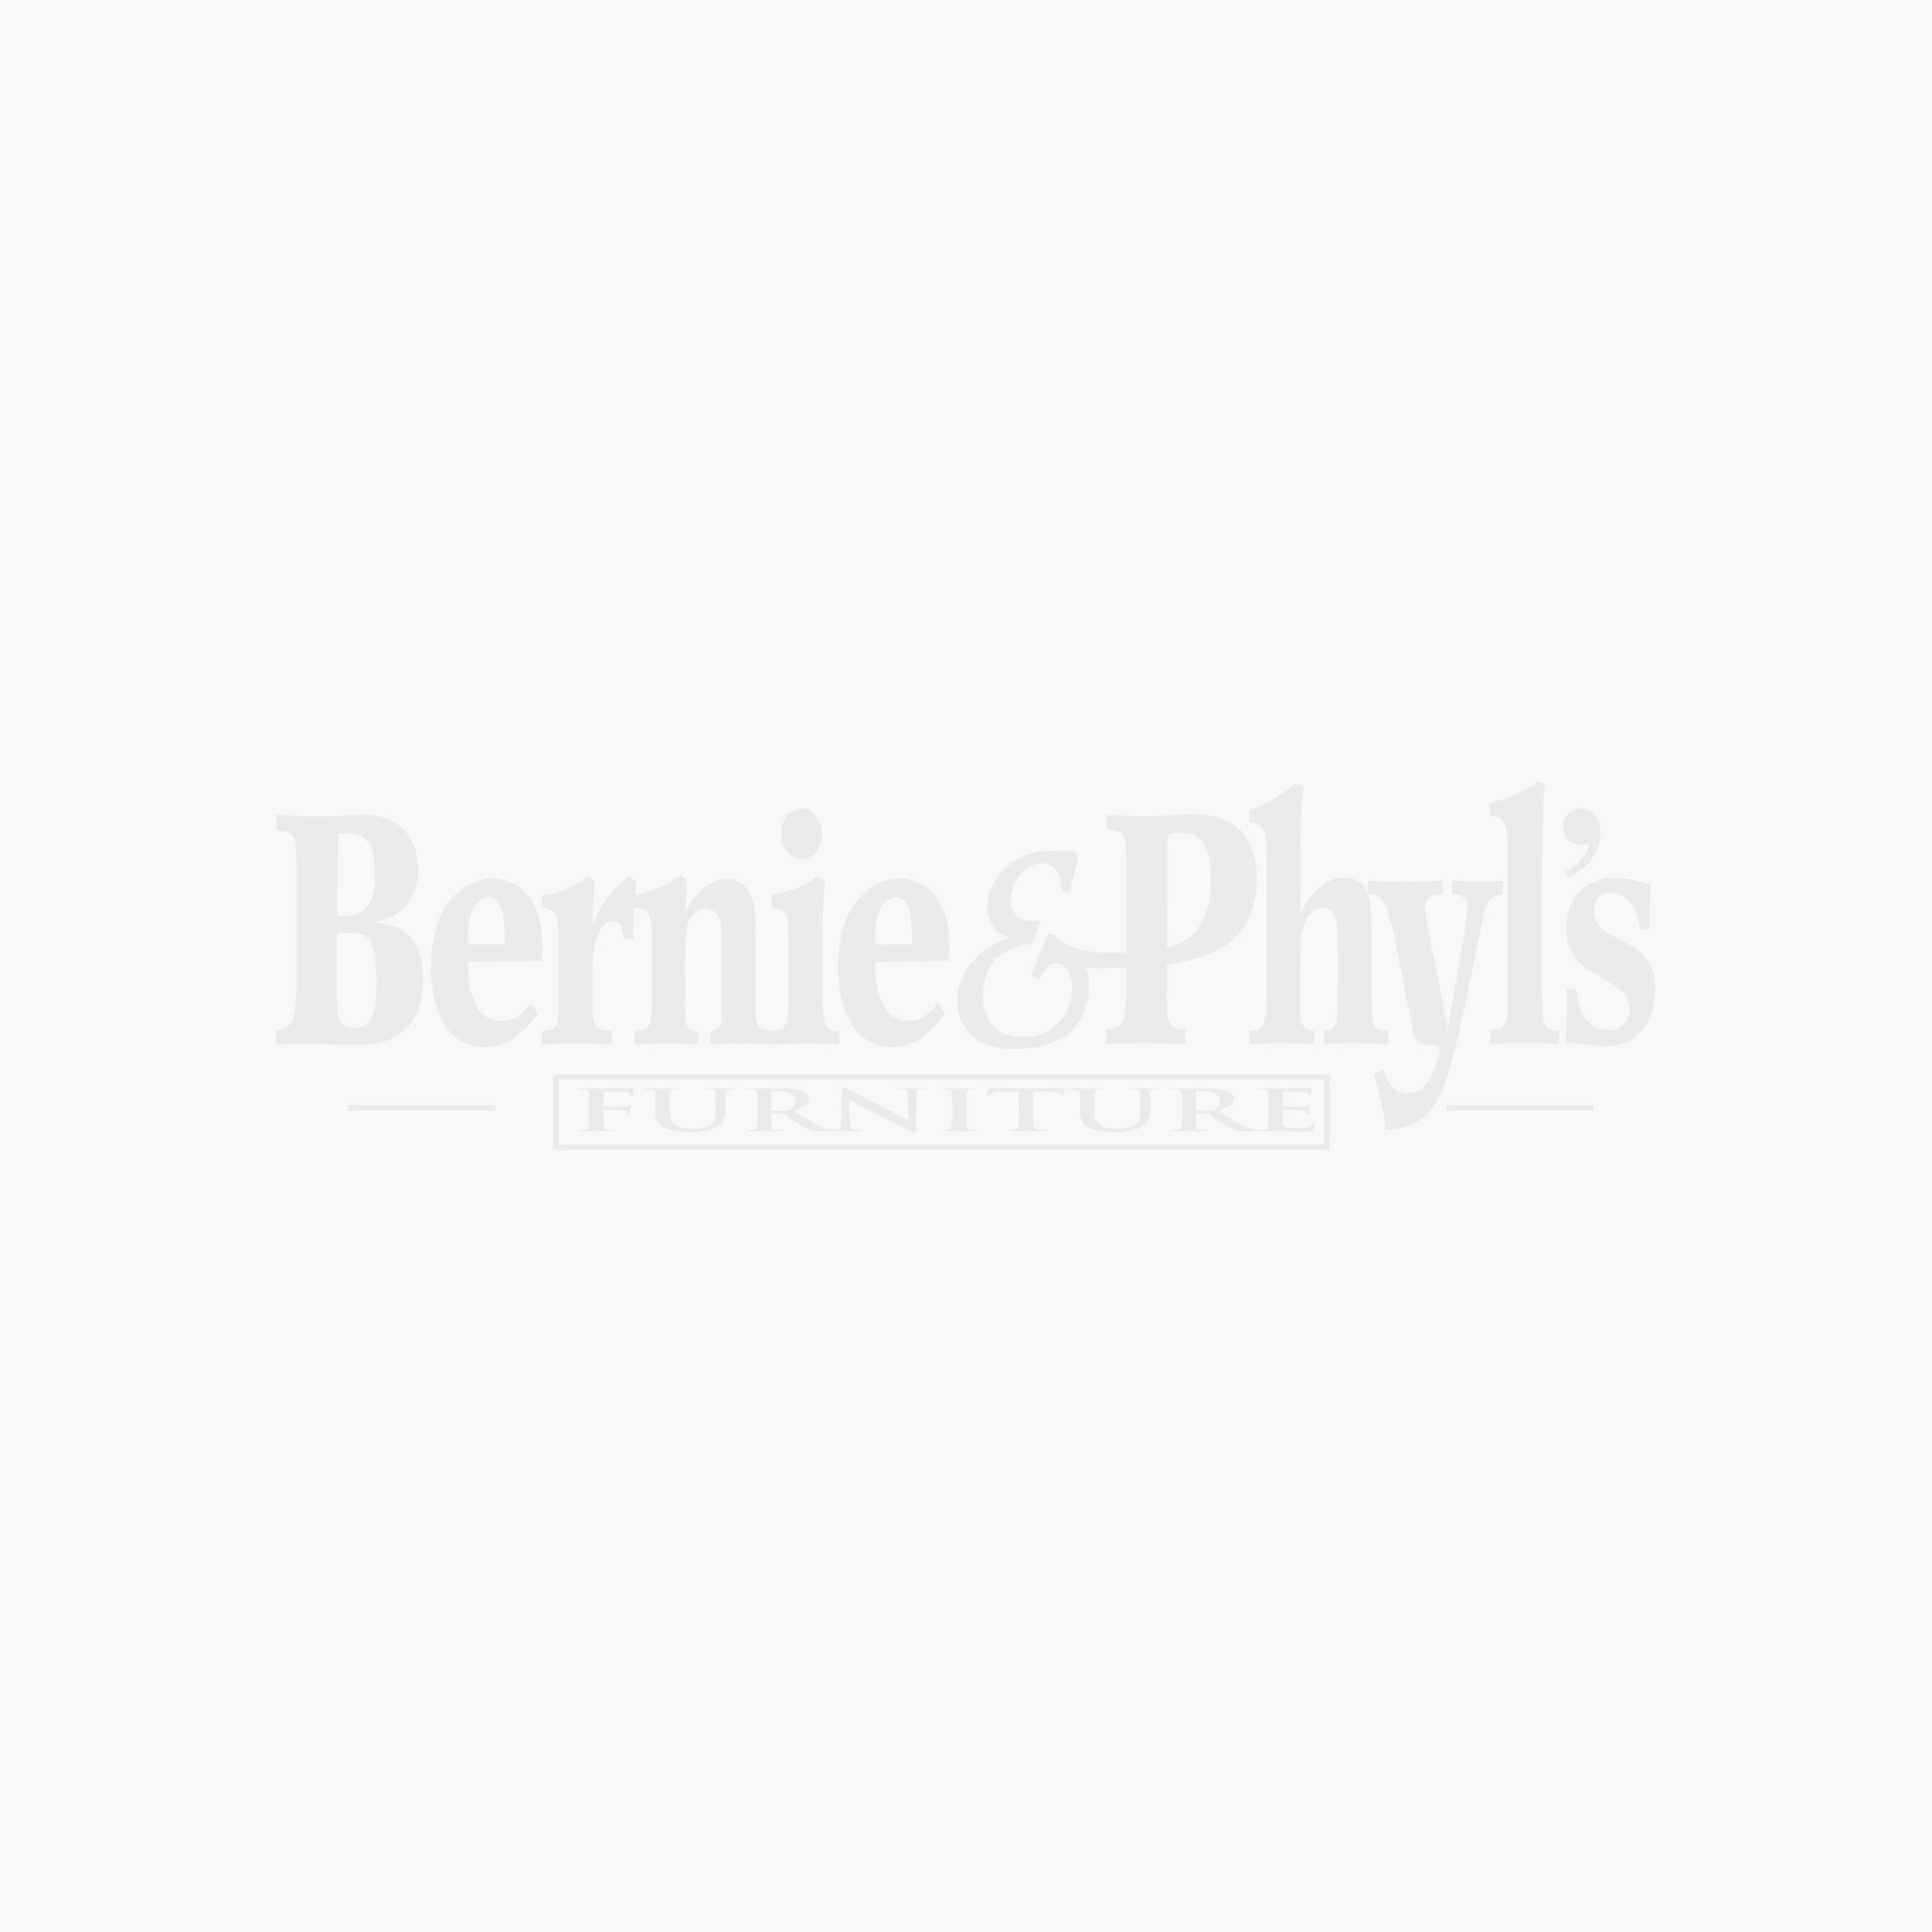 Brookshire Swivel Counter Stool - (Set of 1) - BC1125 - by Southern Enterprises